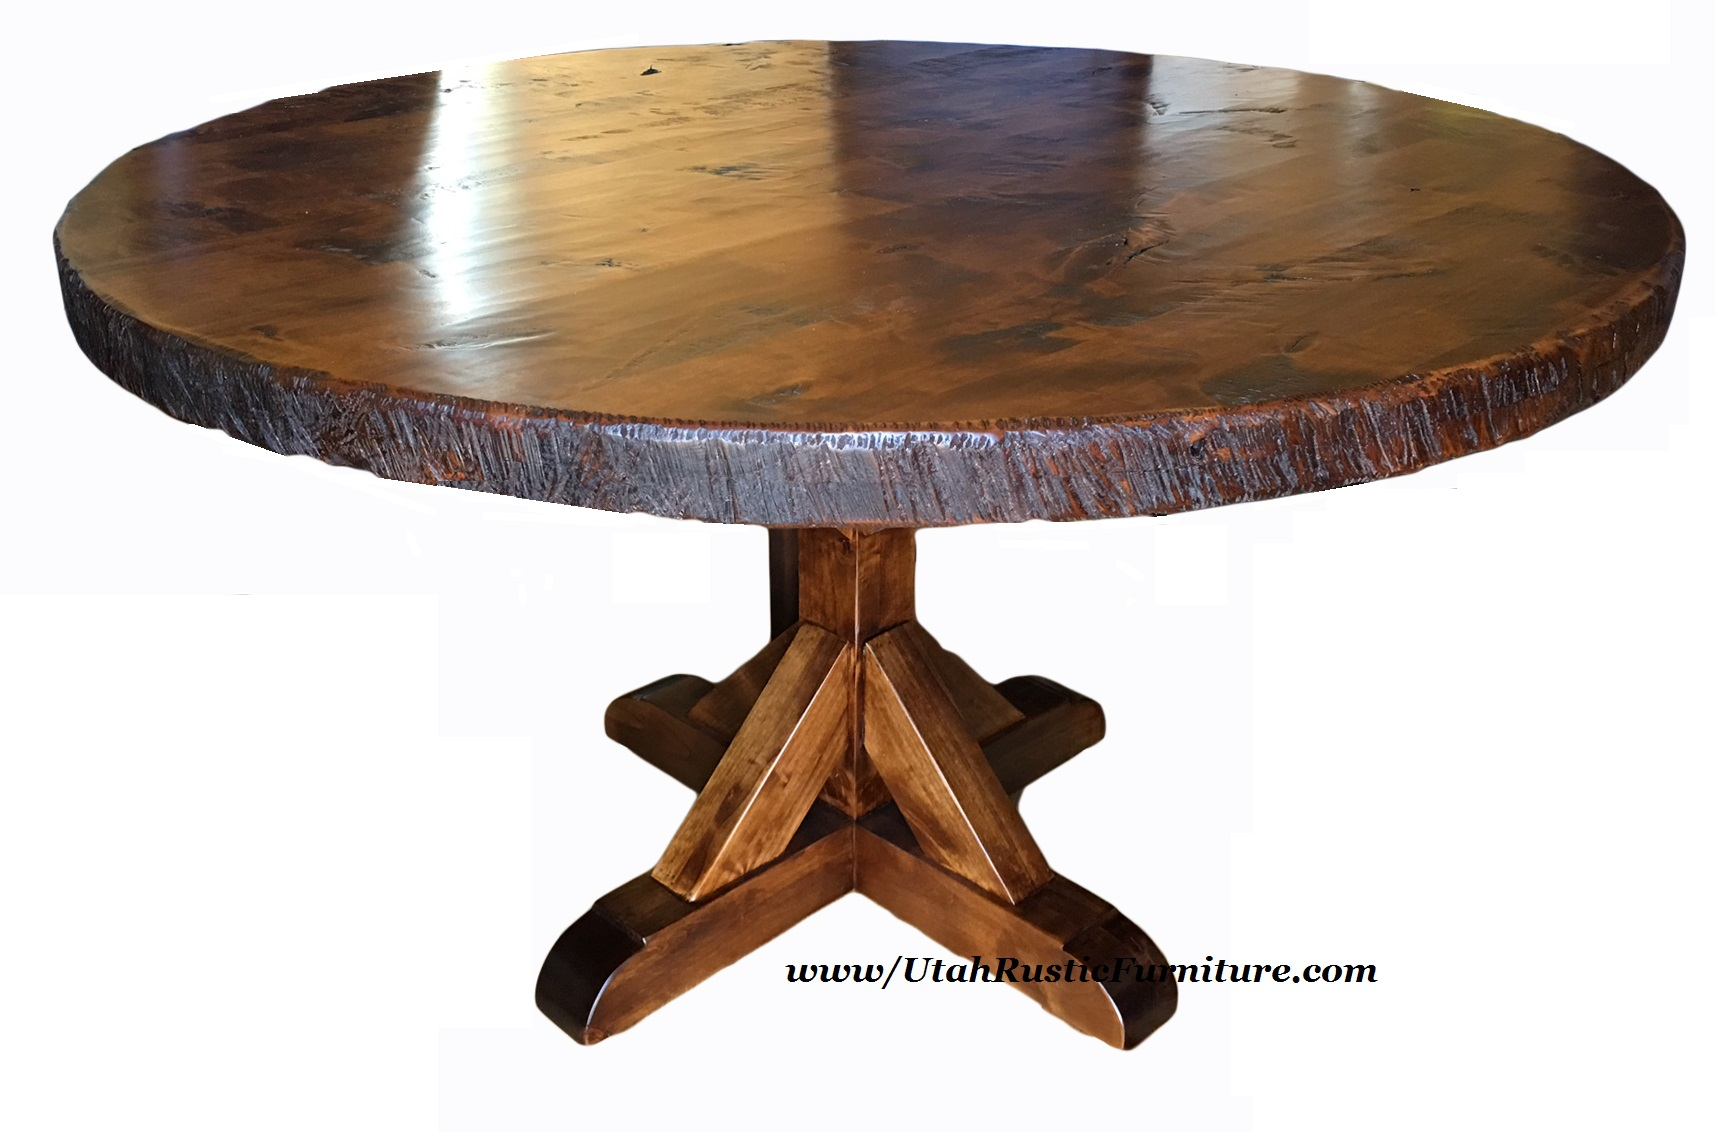 Rustic Round Dining Table For 8 bradley's furniture etc. - utah rustic dining table sets